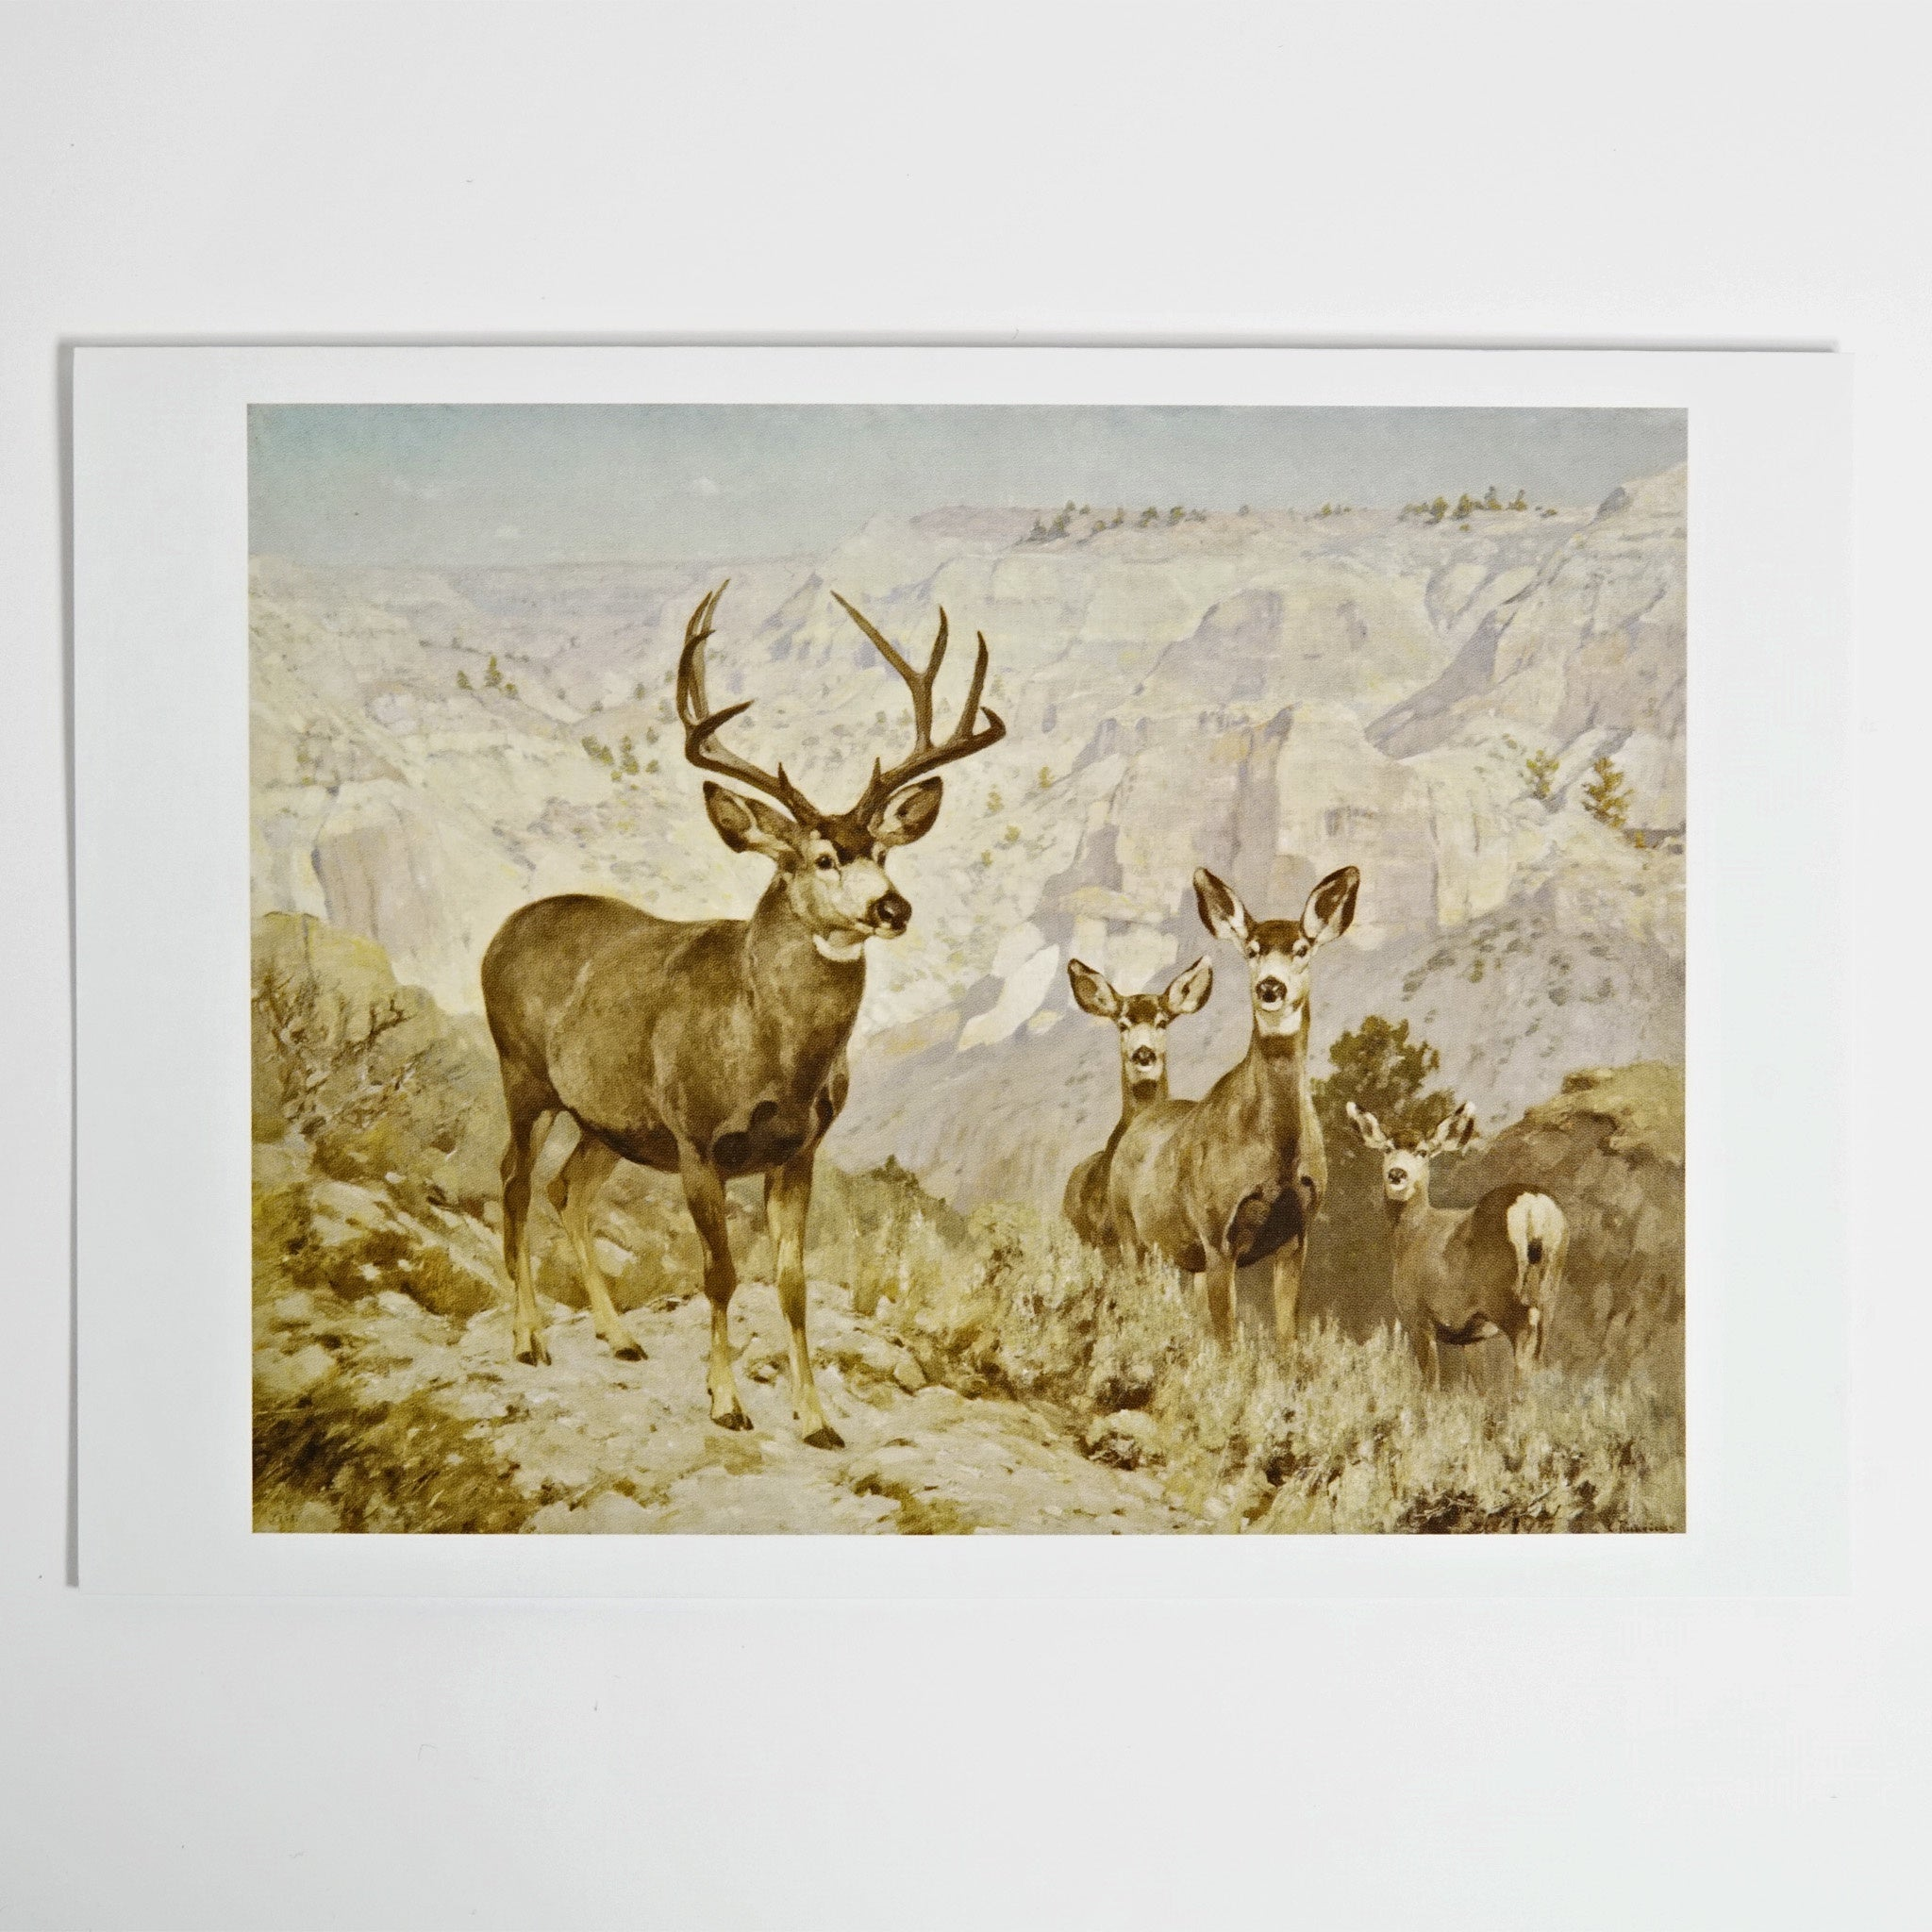 Mule Deer by Carl Rungius